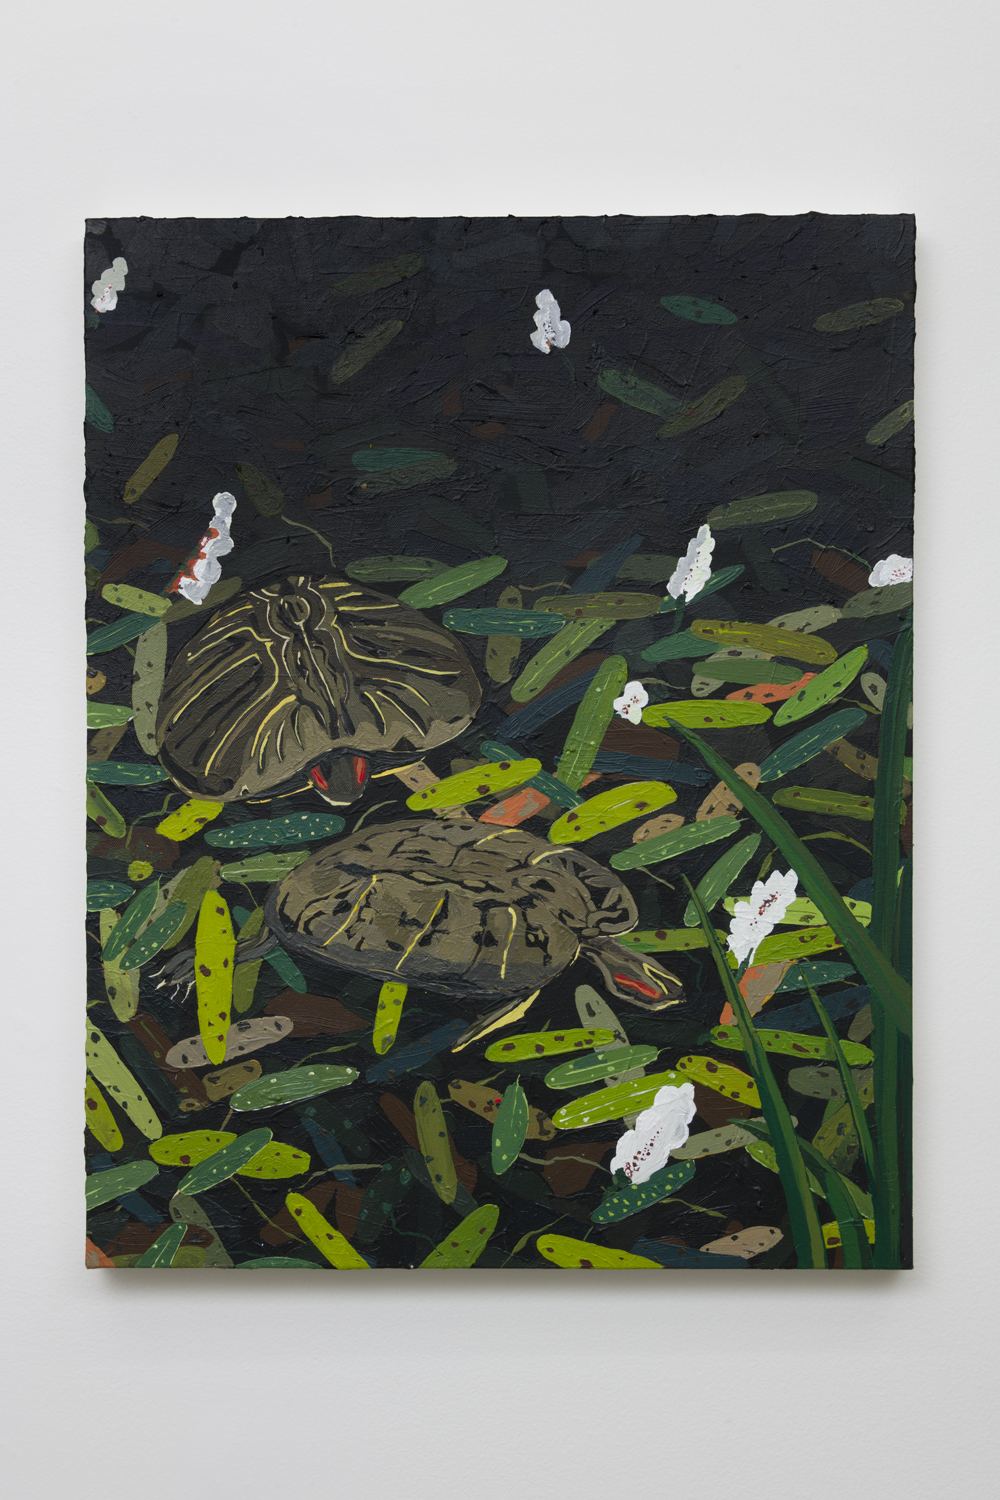 Hilary Pecis  Two Turtles, 2018  Acrylic on canvas  28.5 x 22 inches